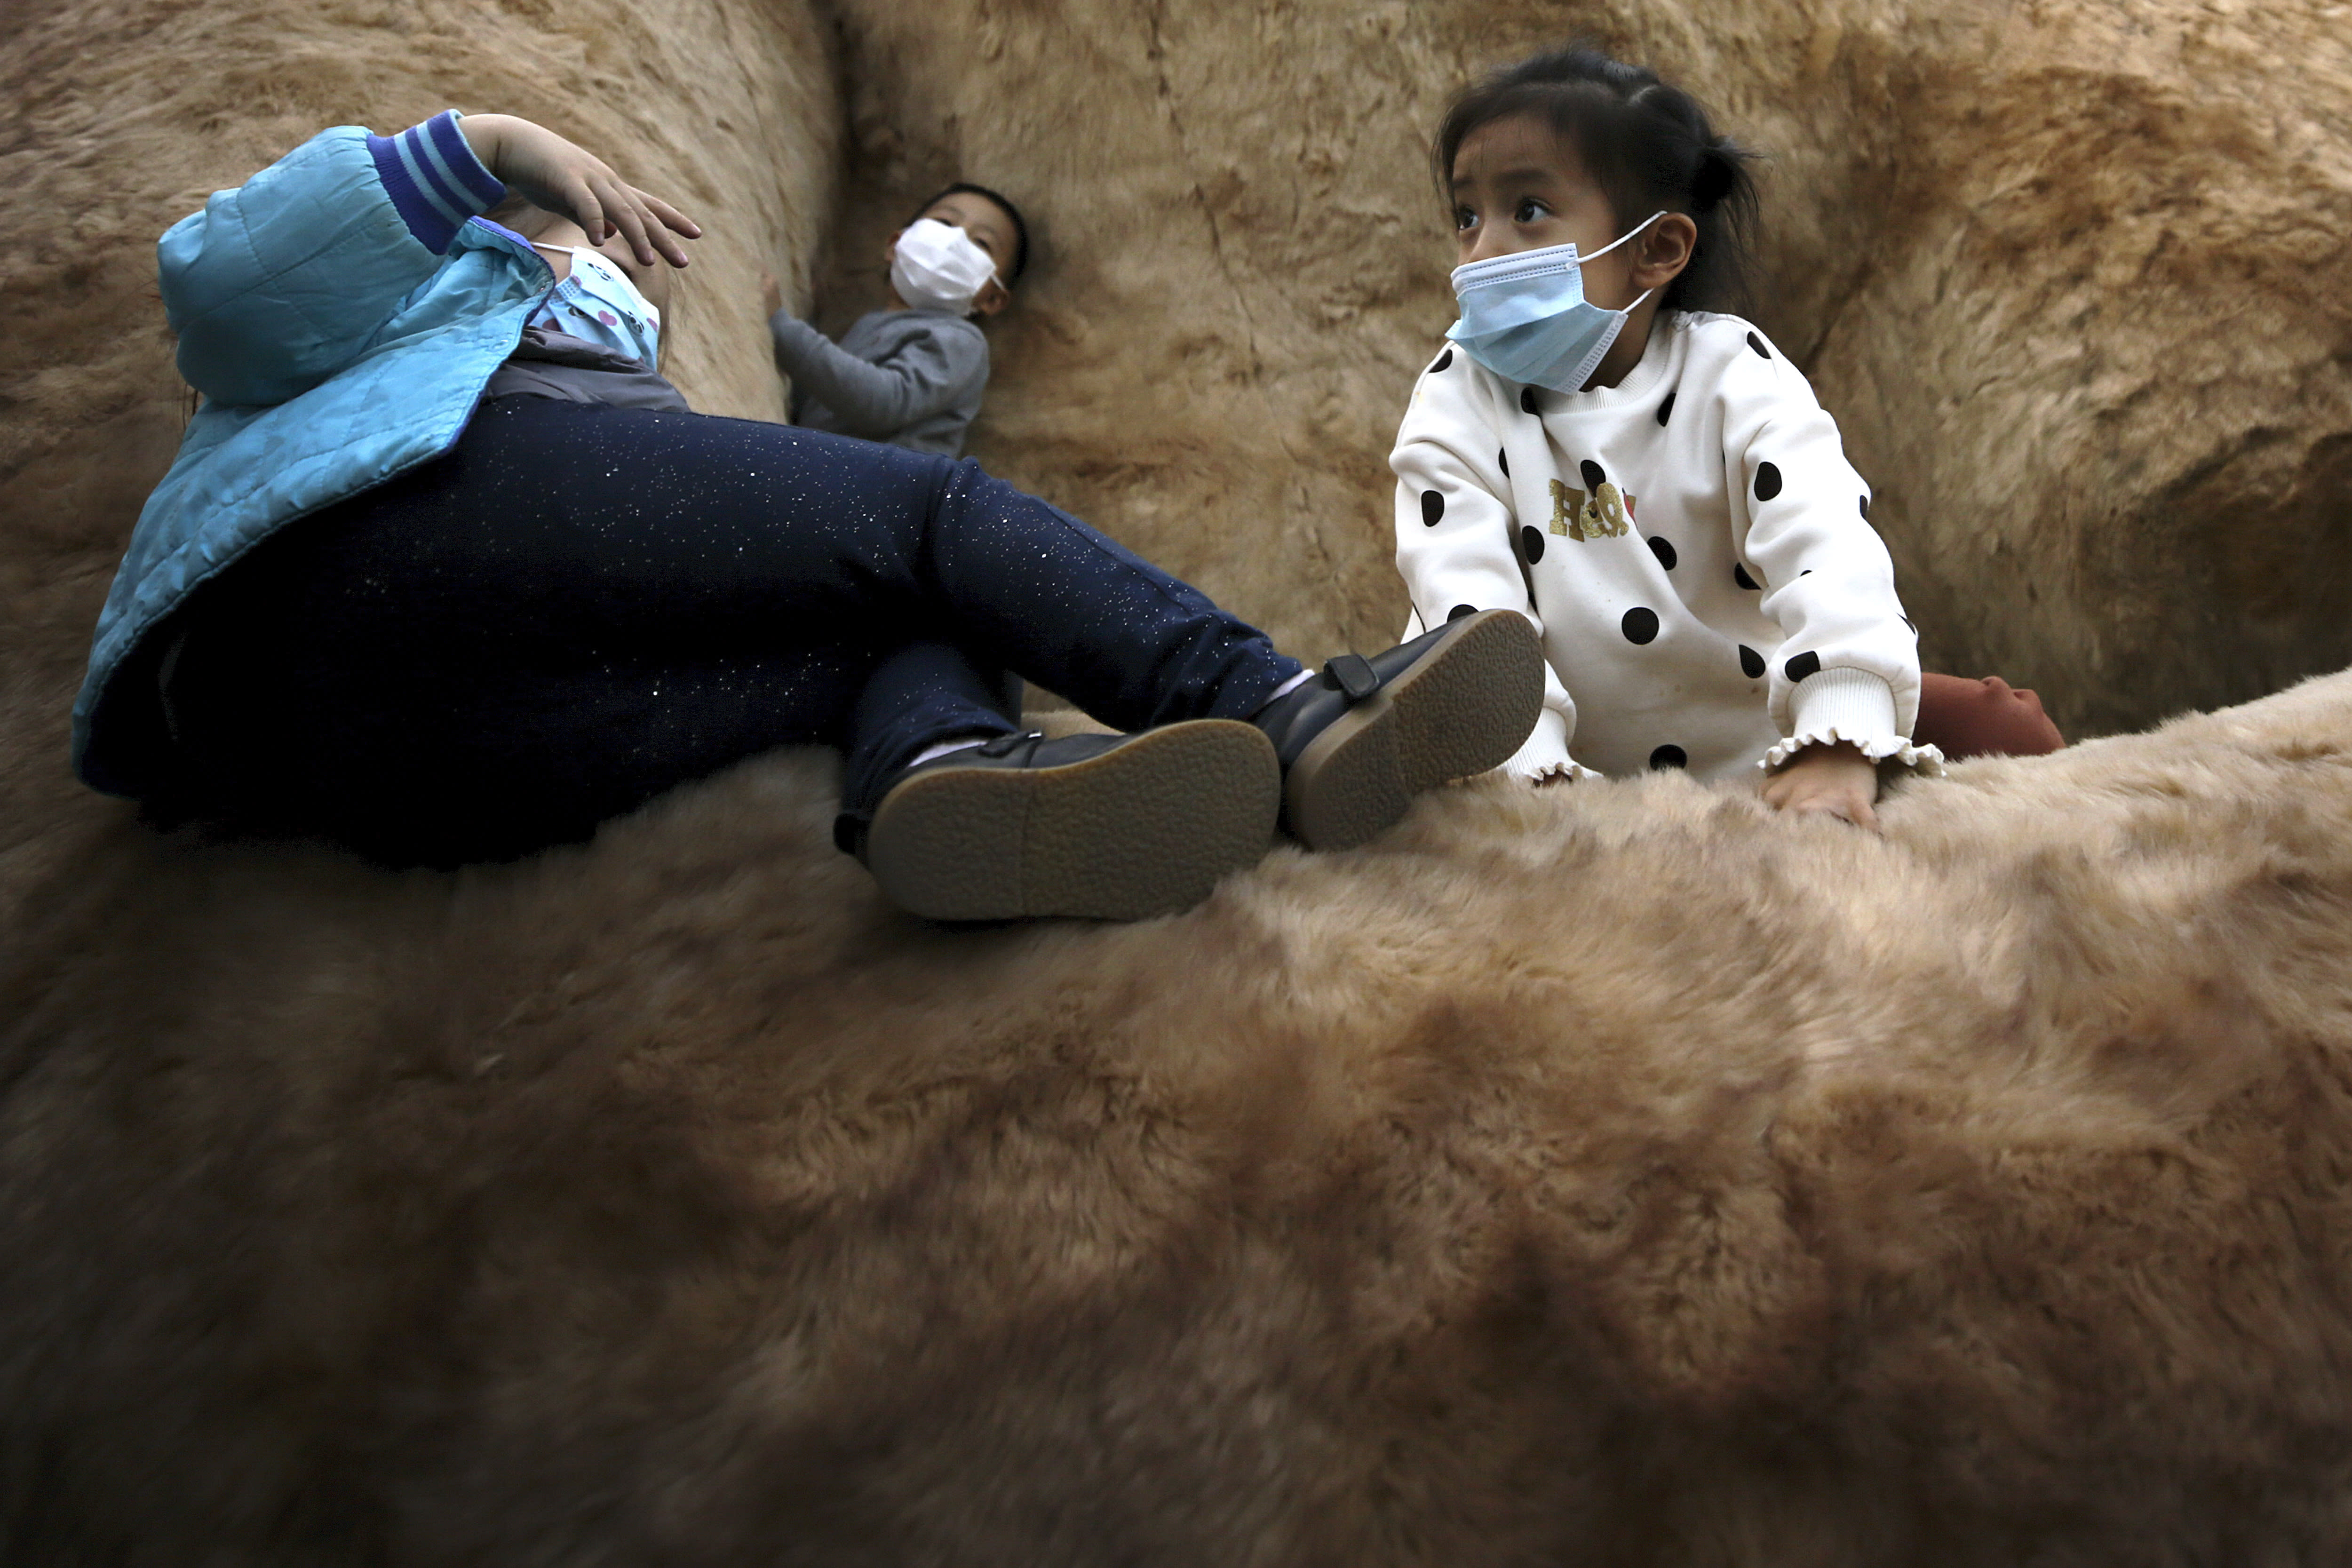 Children wearing face masks to help curb the spread of the coronavirus play on a giant cat structure on display at a commercial office building in Beijing, Sunday, Oct. 18, 2020. (AP Photo/Andy Wong)